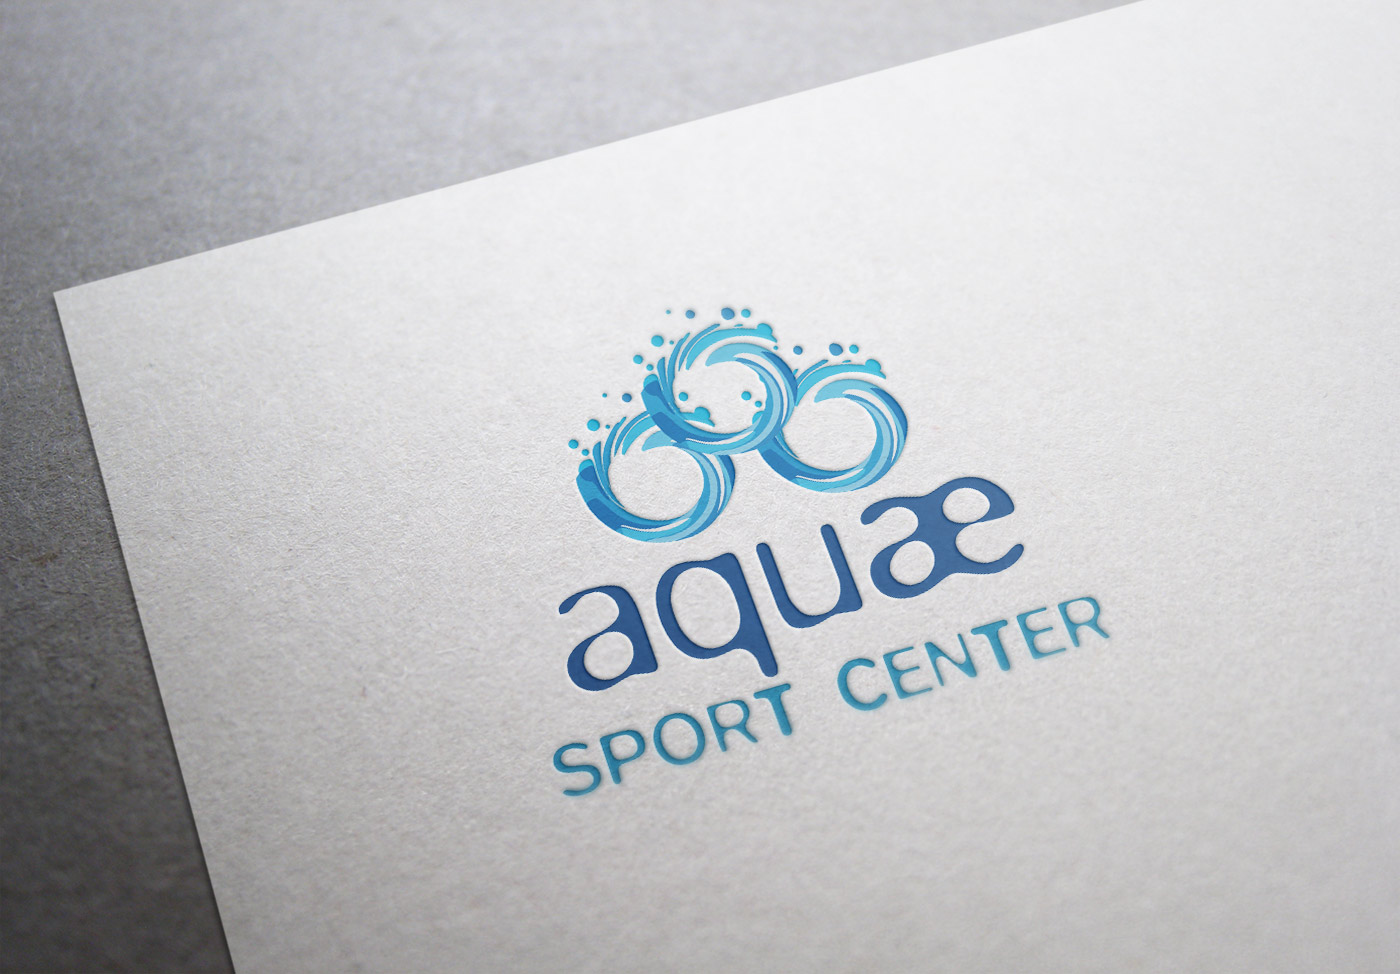 Aquae Sport Center